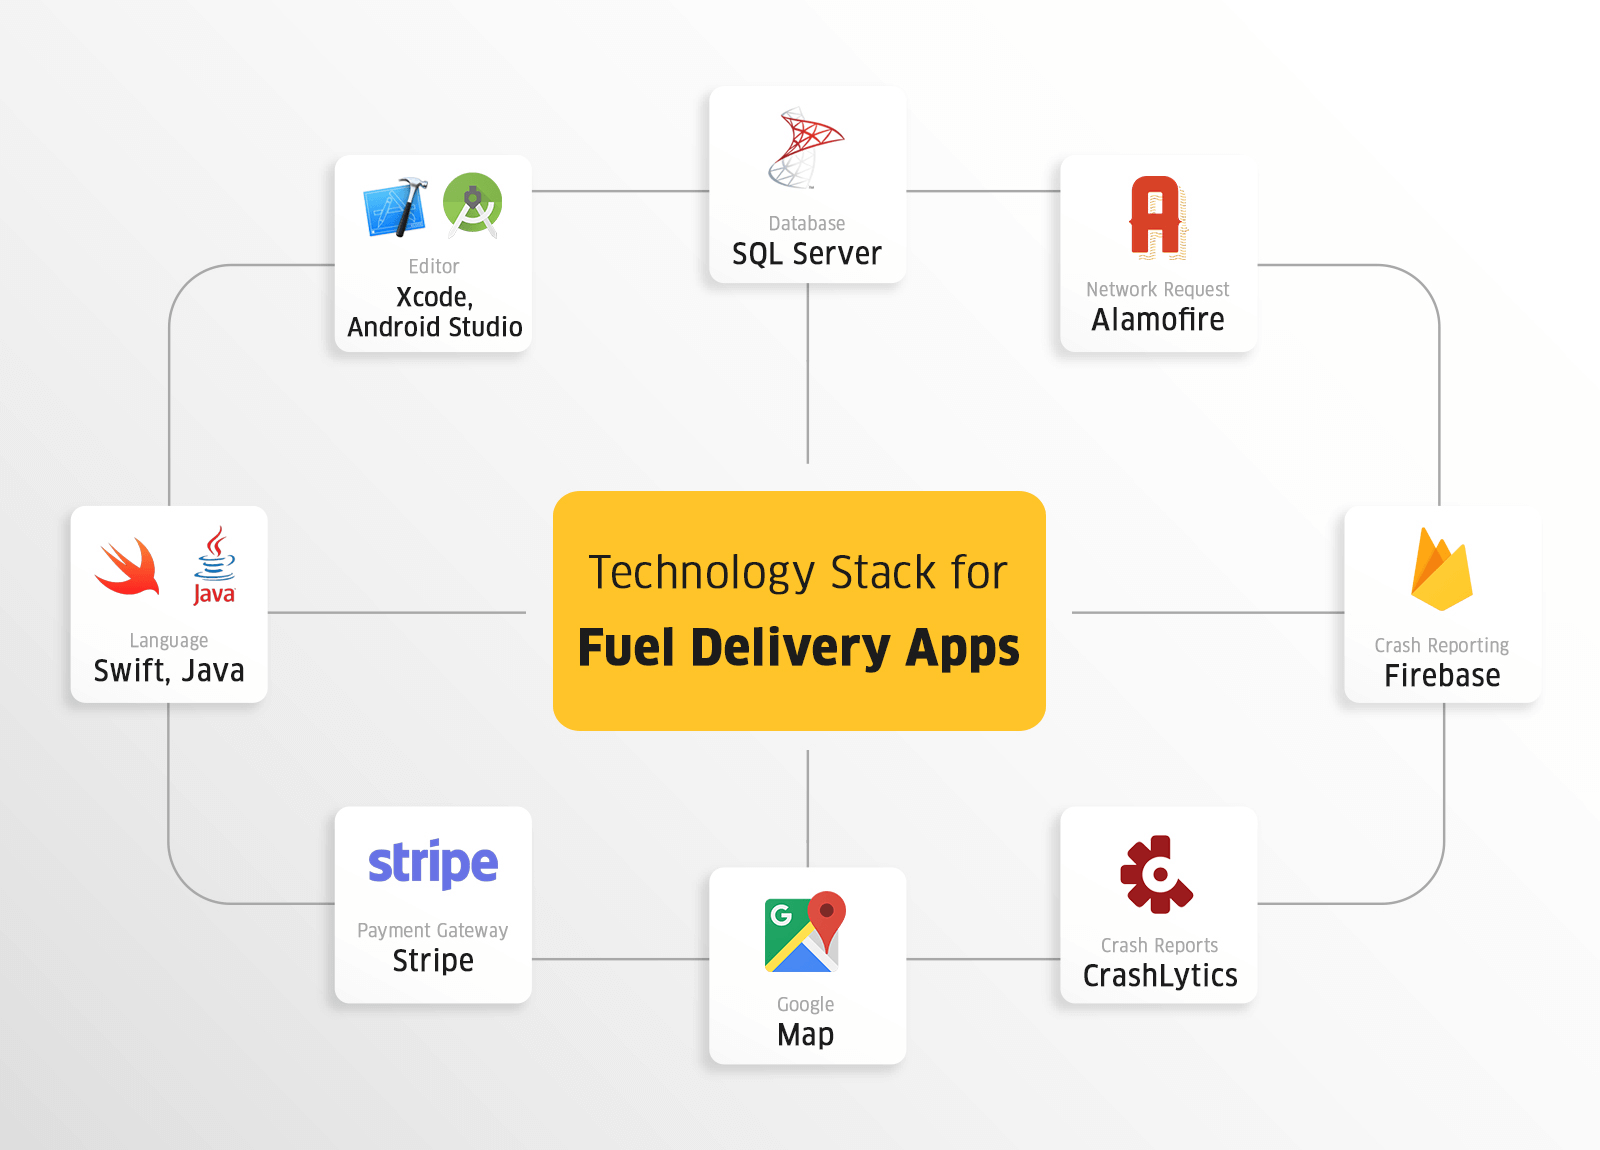 The Technology Stack for Top Best Fuel Delivery App